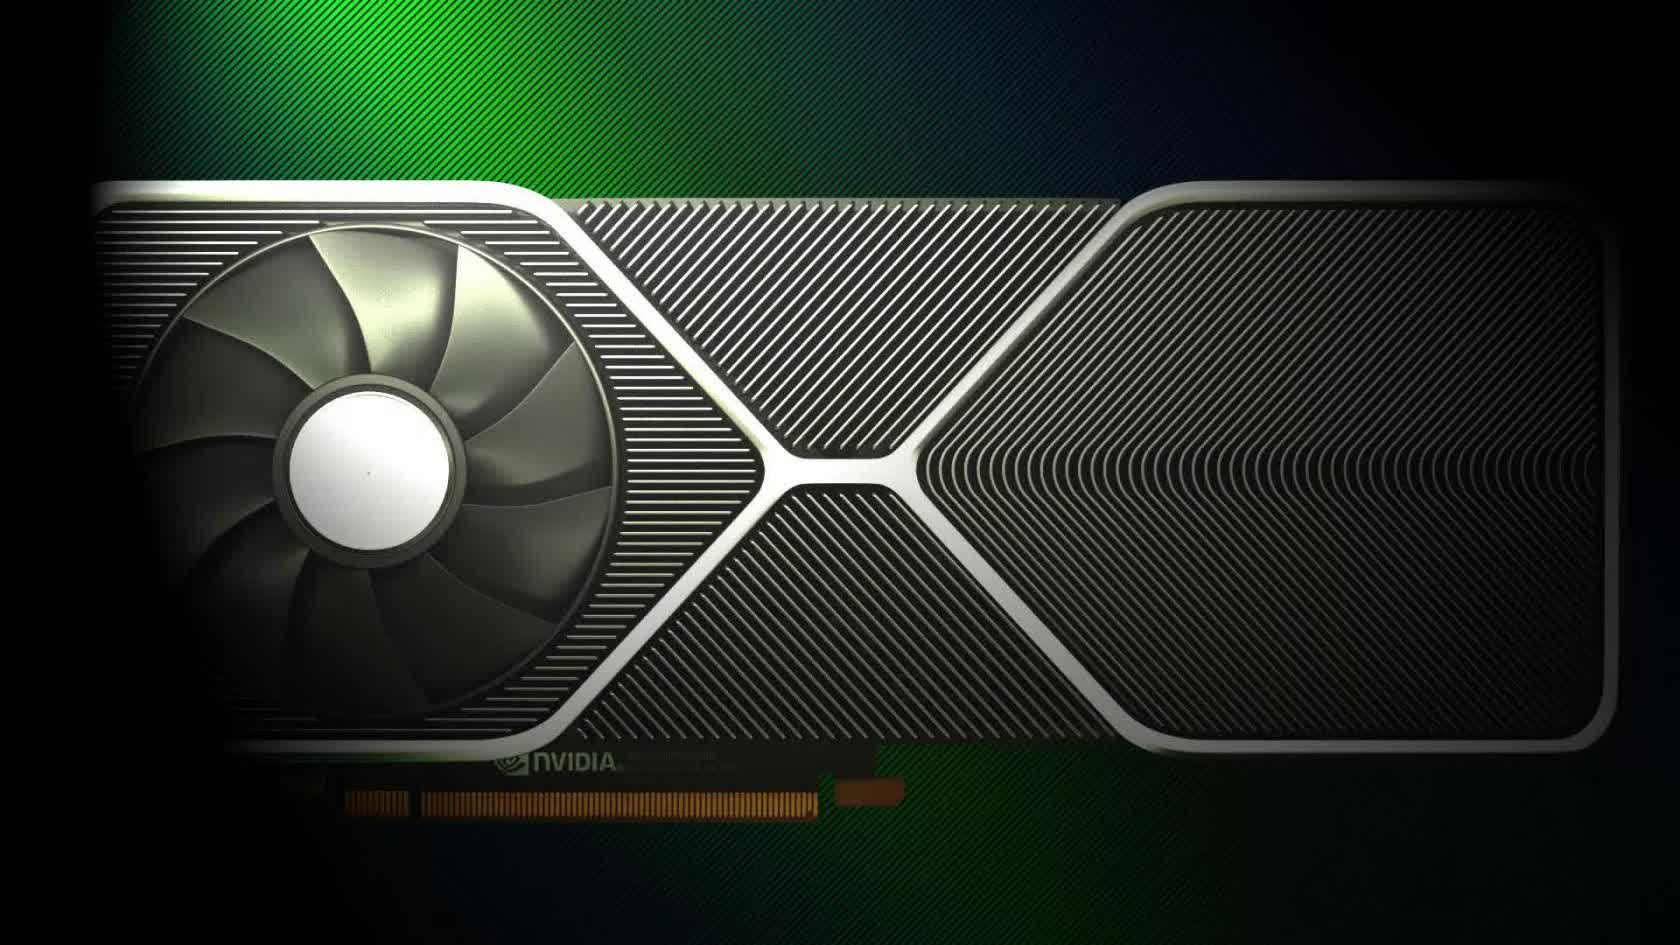 Nvidia's GeForce RTX 3090, 3080, and 3070 specs have allegedly been leaked thumbnail